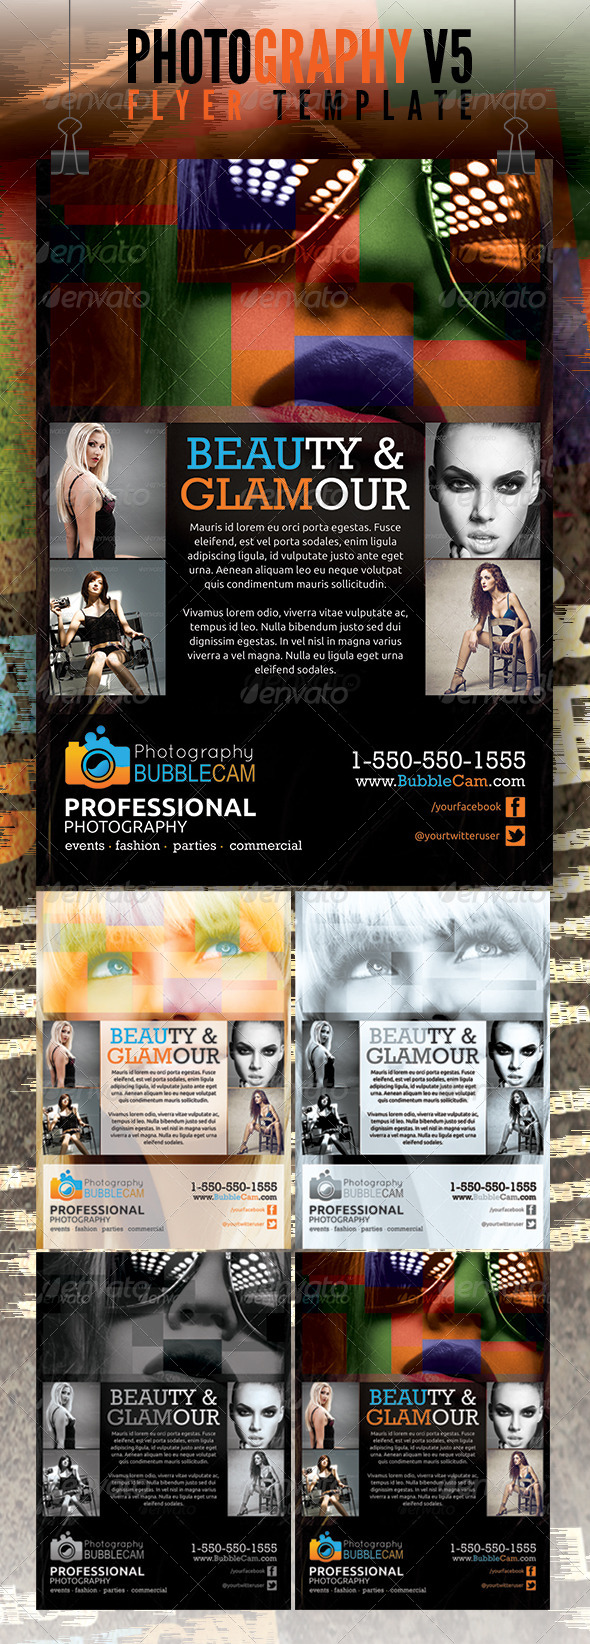 Photography Flyer v5 - Commerce Flyers